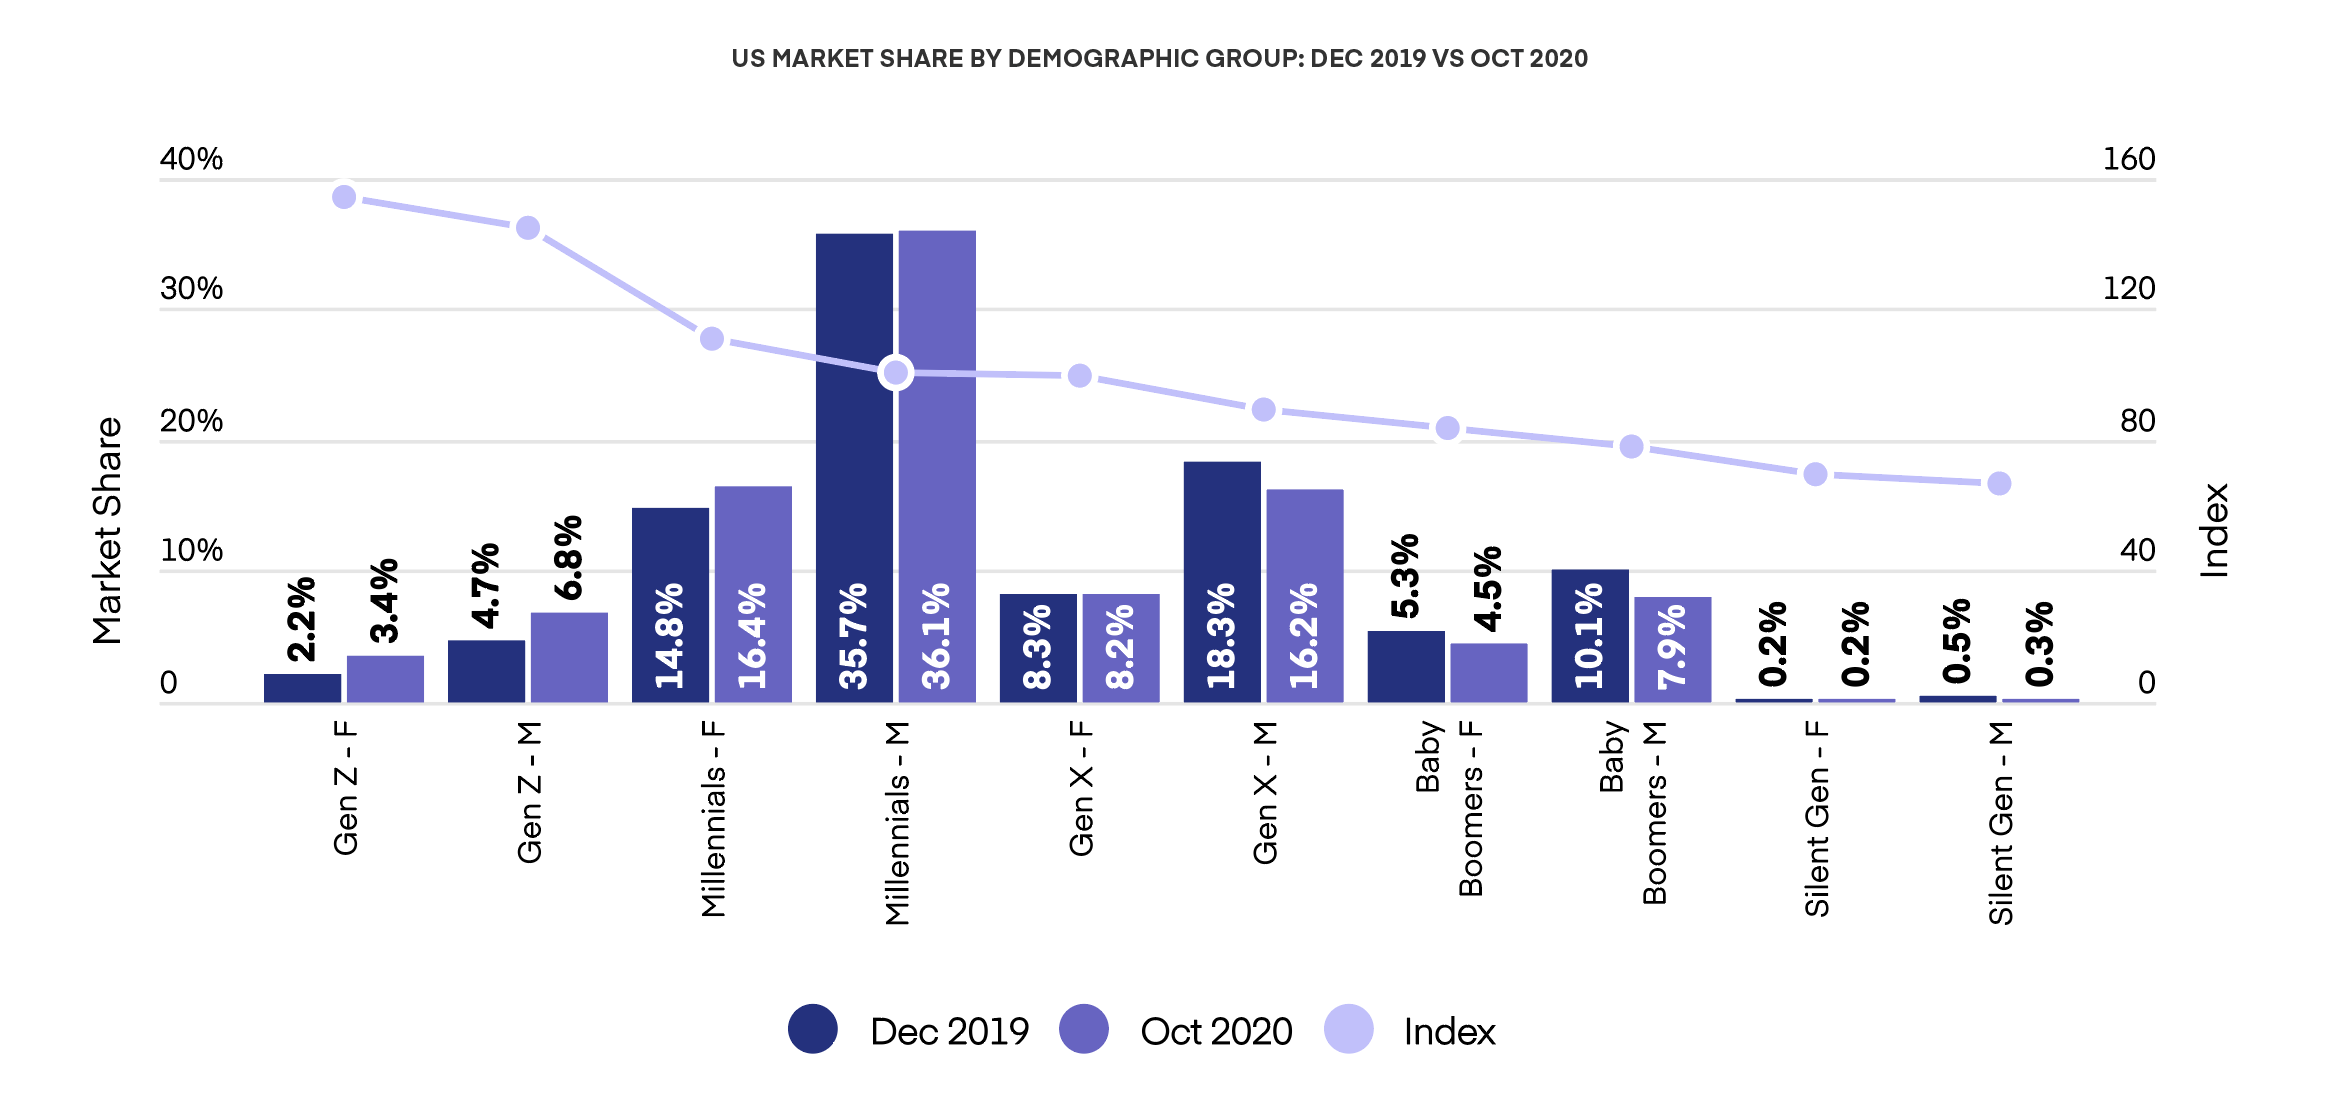 US Market Share By Demographic Group: DEC 2019 vs OCT 2020